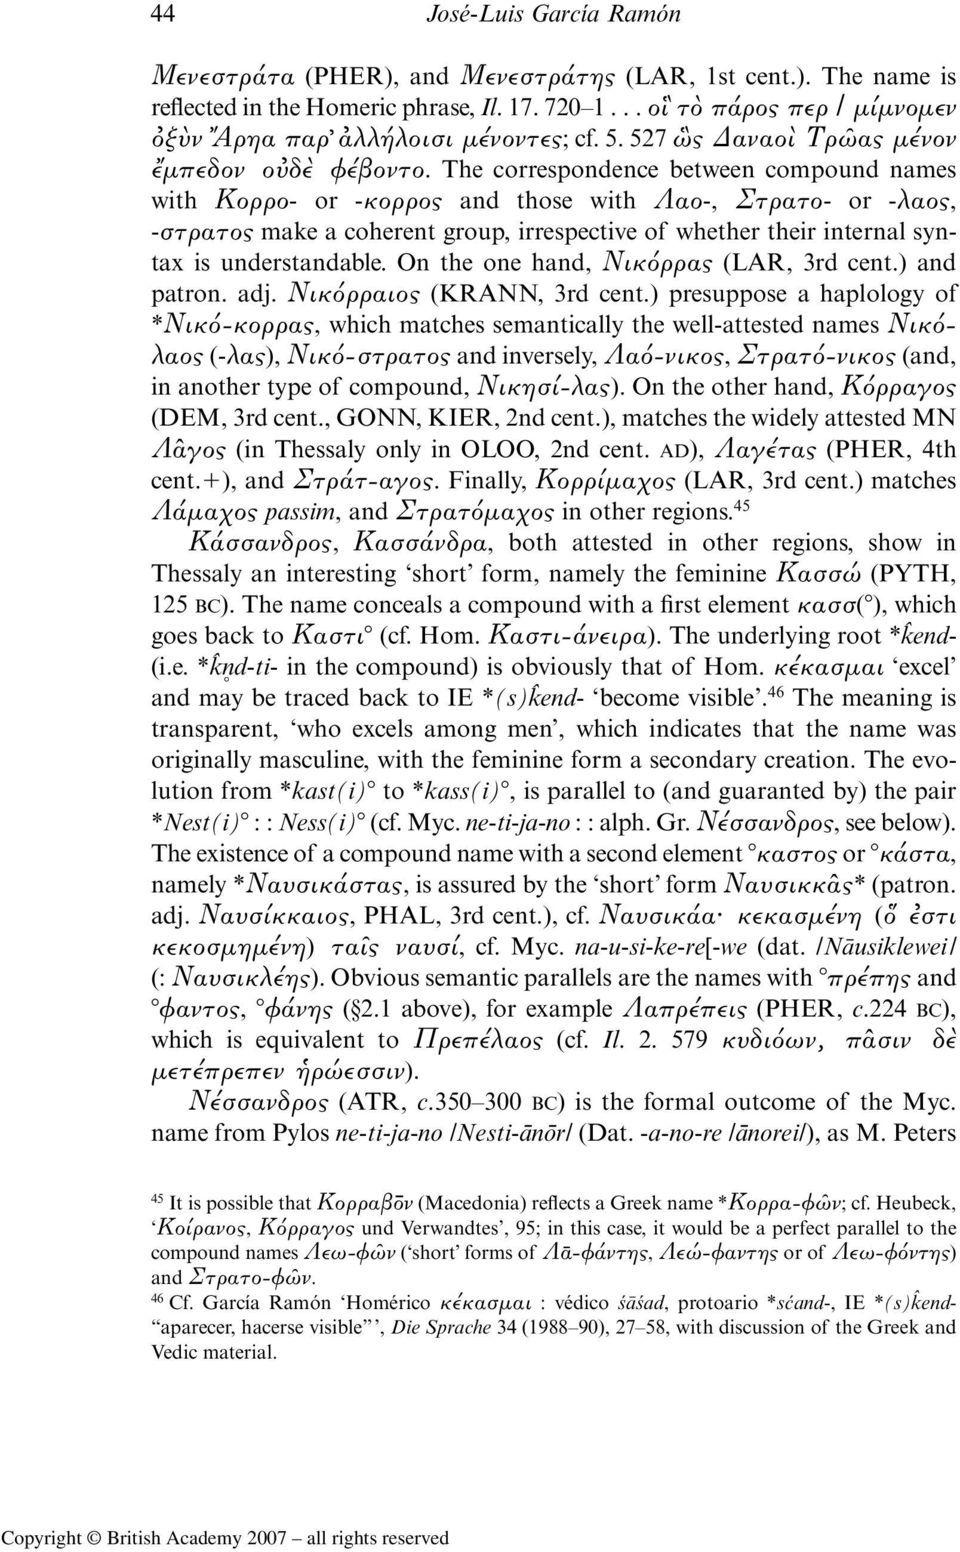 The correspondence between compound names with Κορρο- or -κορρος and those with Λαο-, Στρατο- or -λαος, -στρατος make a coherent group, irrespective of whether their internal syntax is understandable.